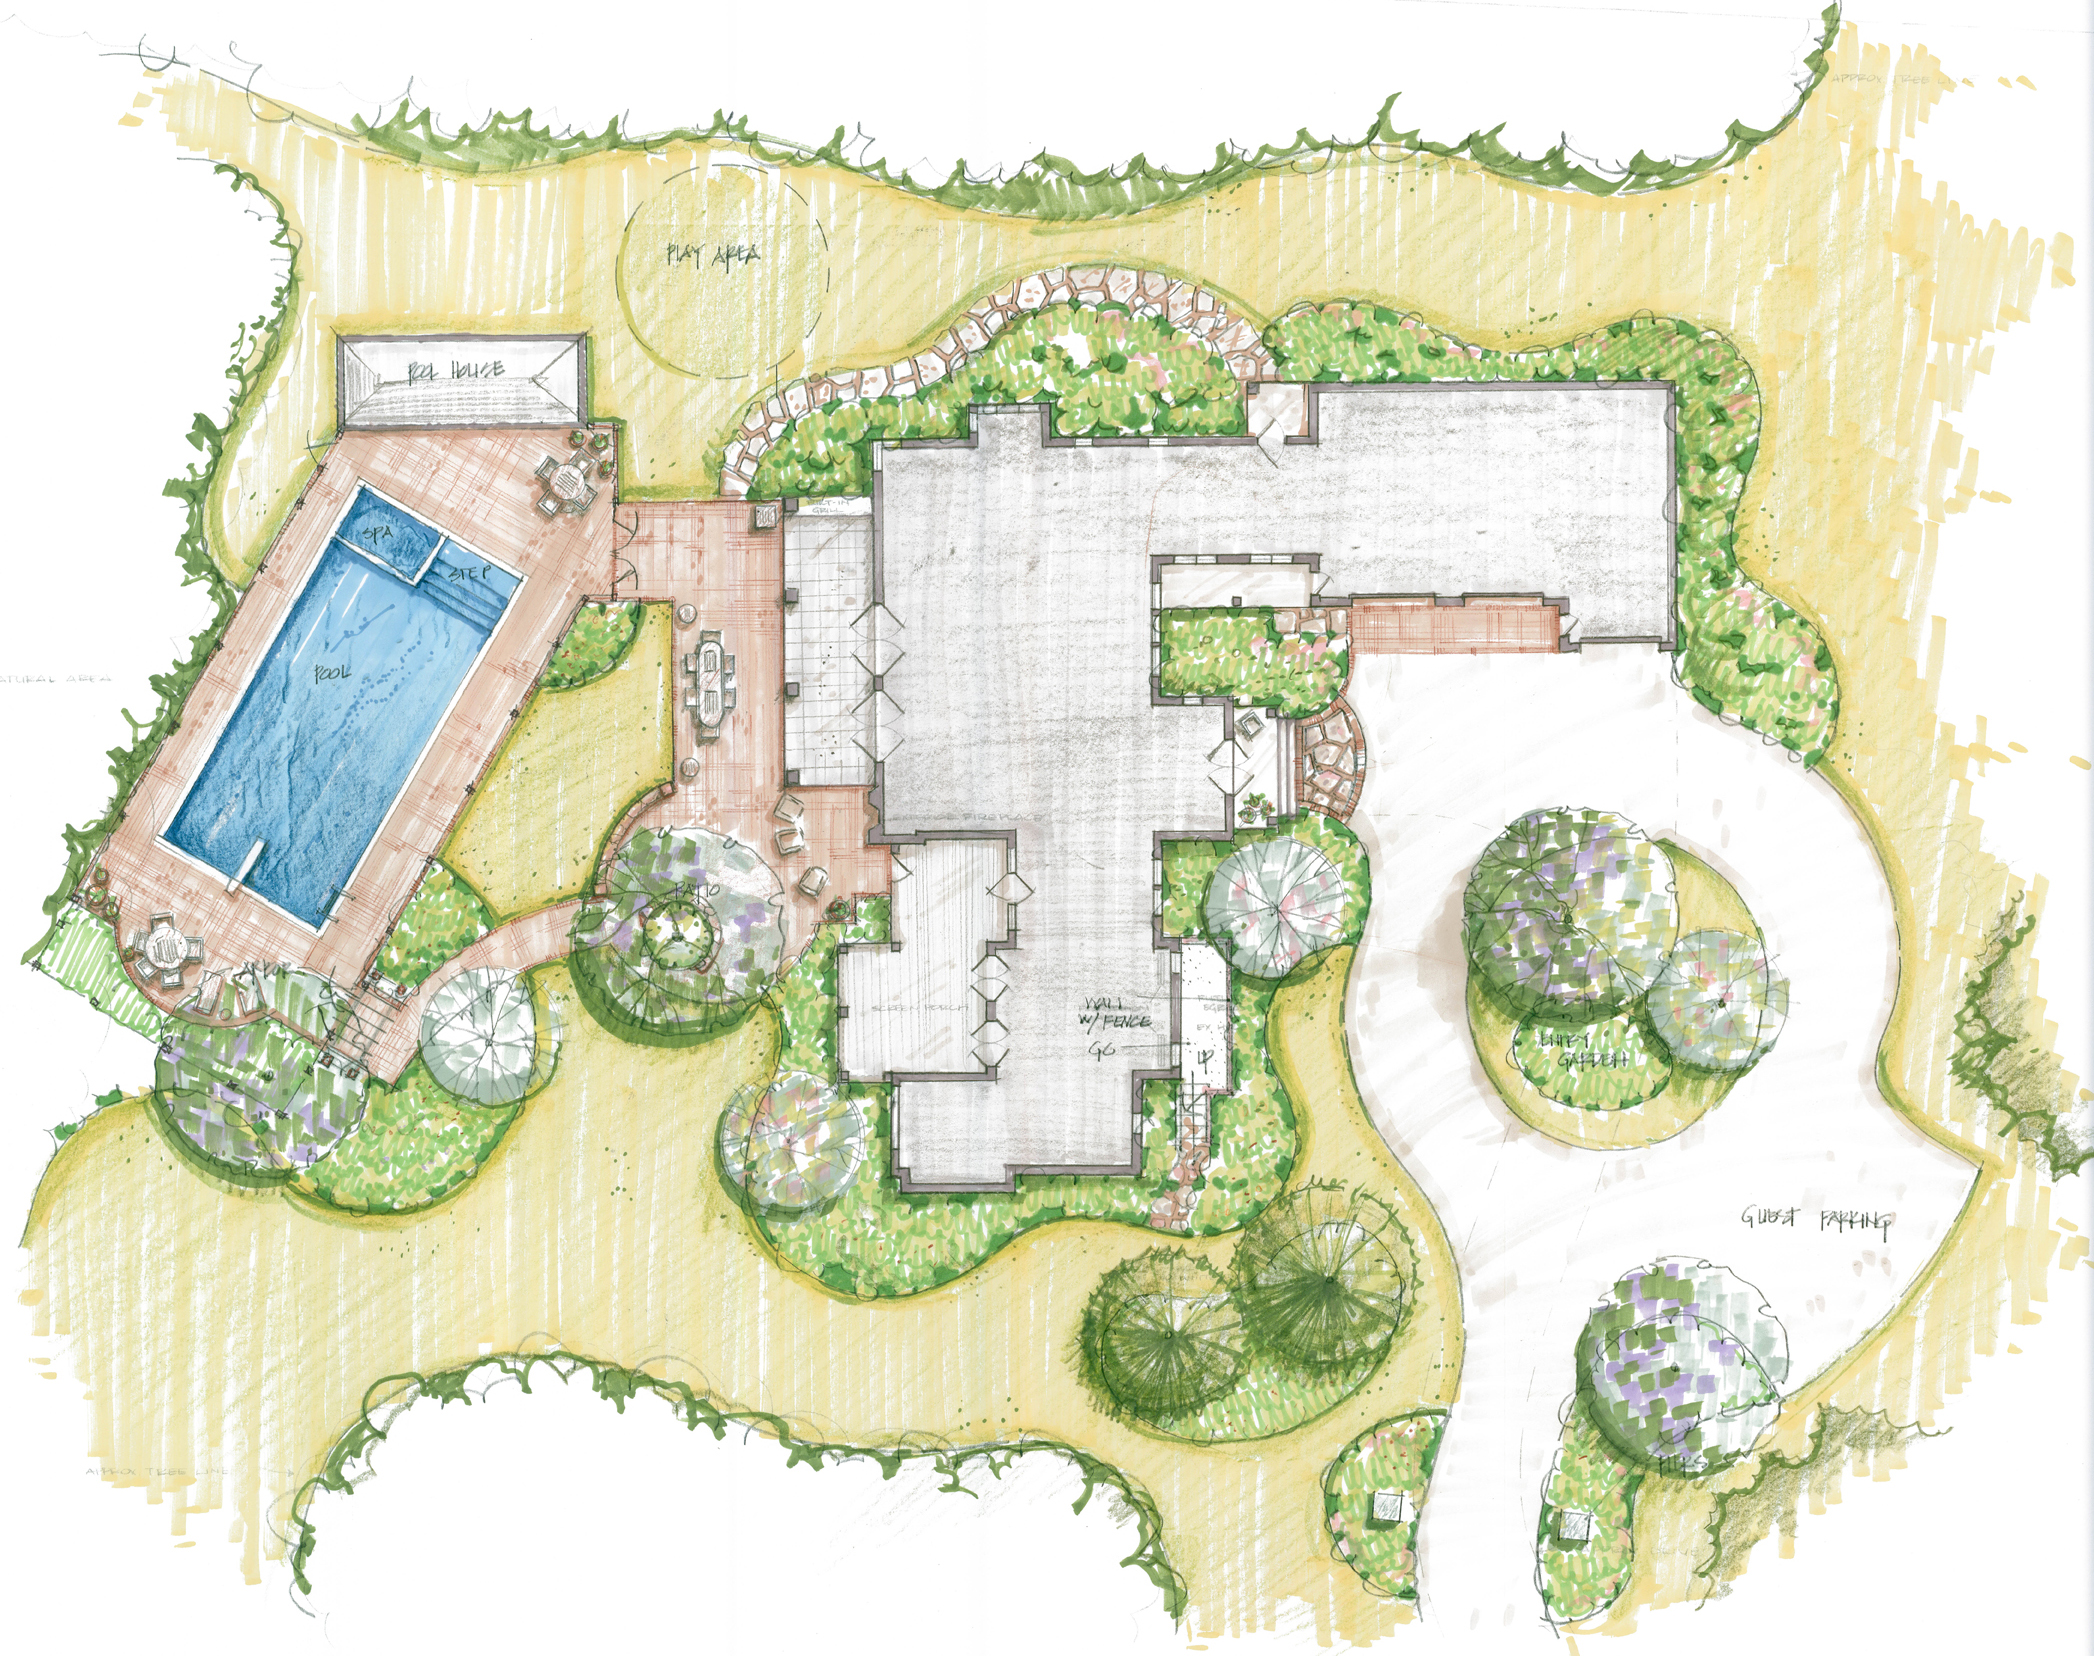 5 simple reasons to plan your landscape design landscape for Landscape blueprints